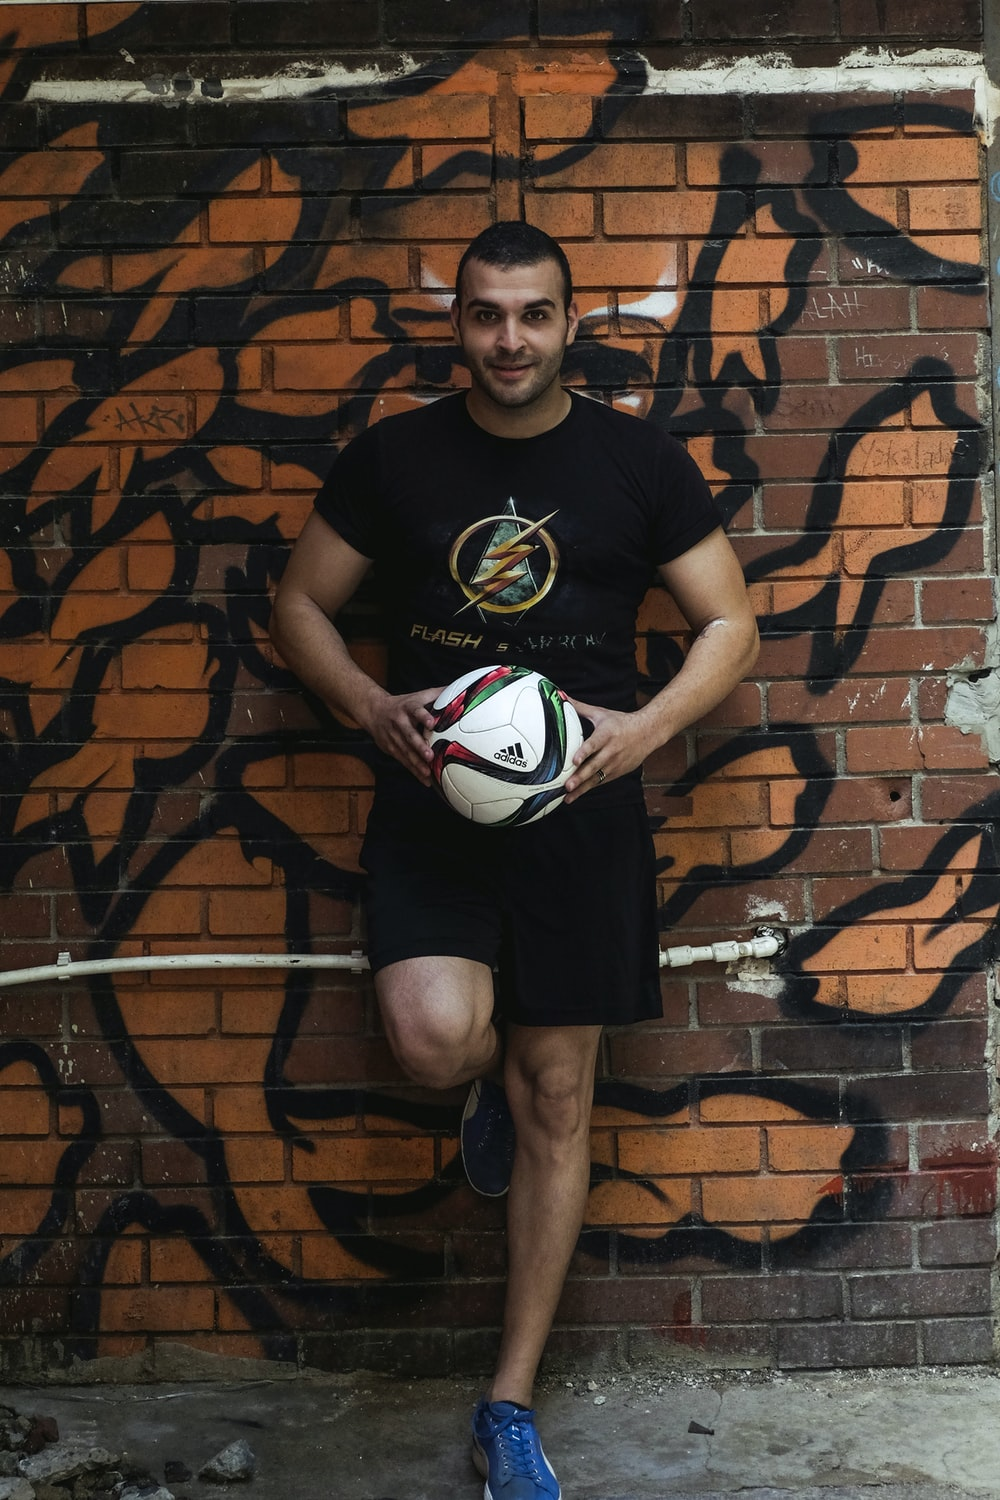 man leaning on wall holding velleyball